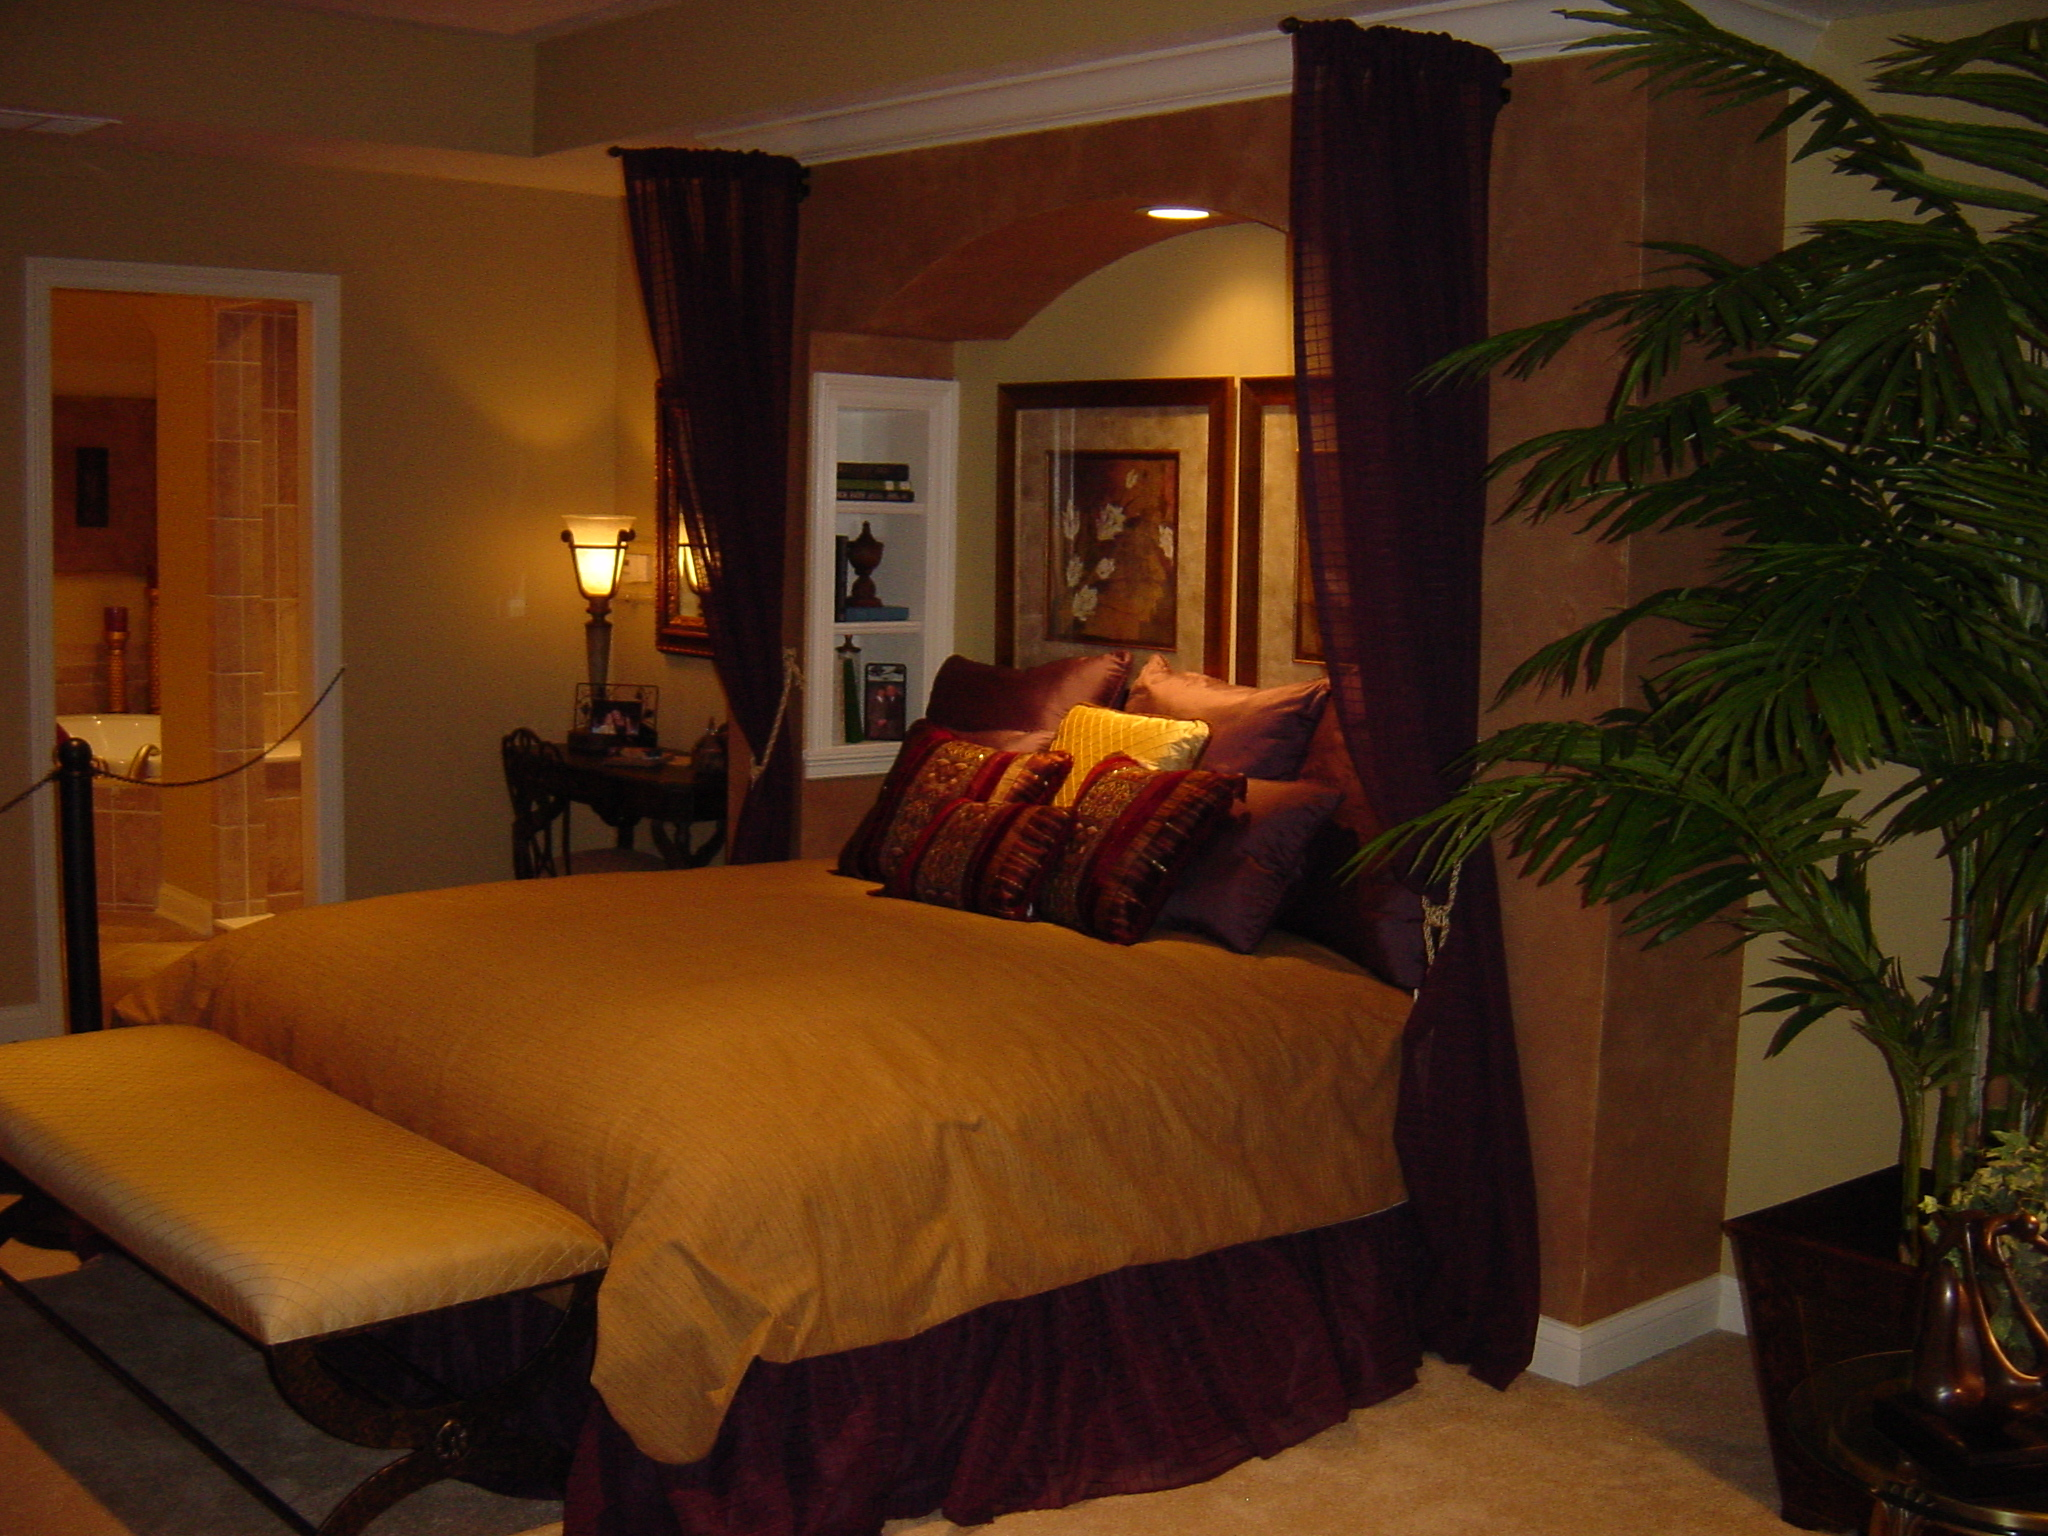 basement remodel designs. Bedroom Remodeling Basement Remodel Designs